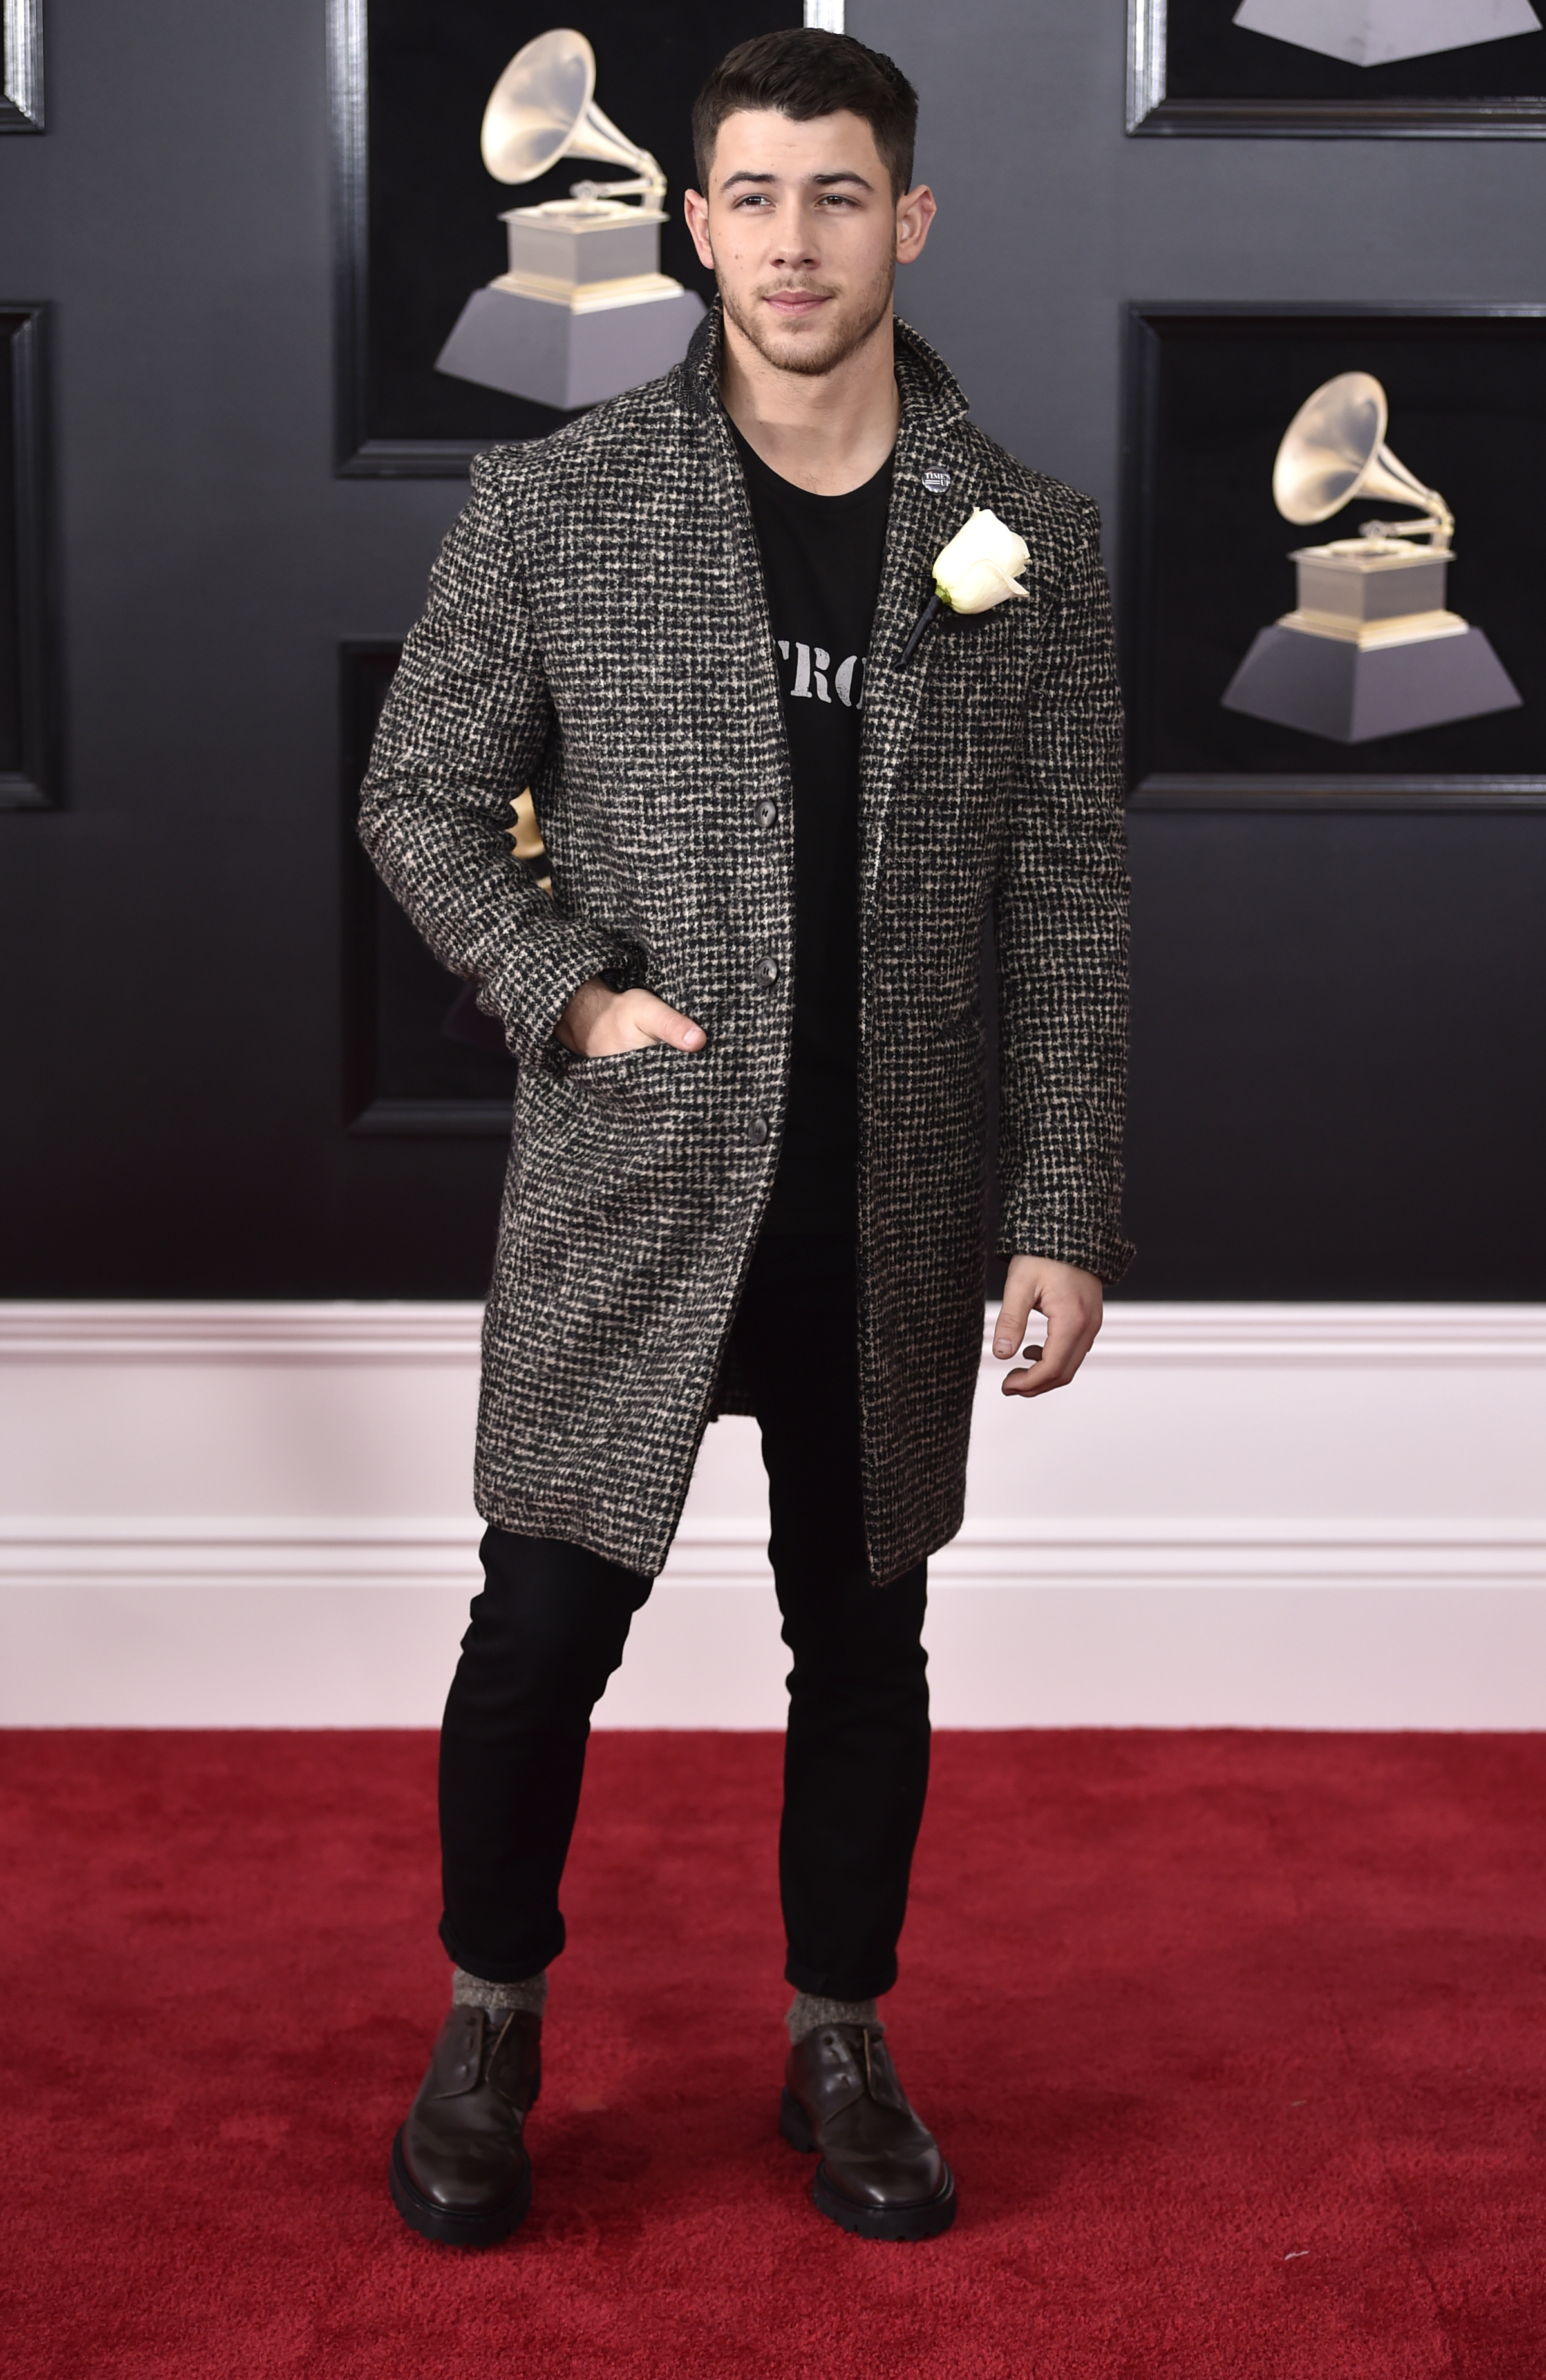 <div class='meta'><div class='origin-logo' data-origin='AP'></div><span class='caption-text' data-credit='Evan Agostini/Invision/AP'>Nick Jonas arrives at the 60th annual Grammy Awards at Madison Square Garden on Sunday, Jan. 28, 2018, in New York.</span></div>